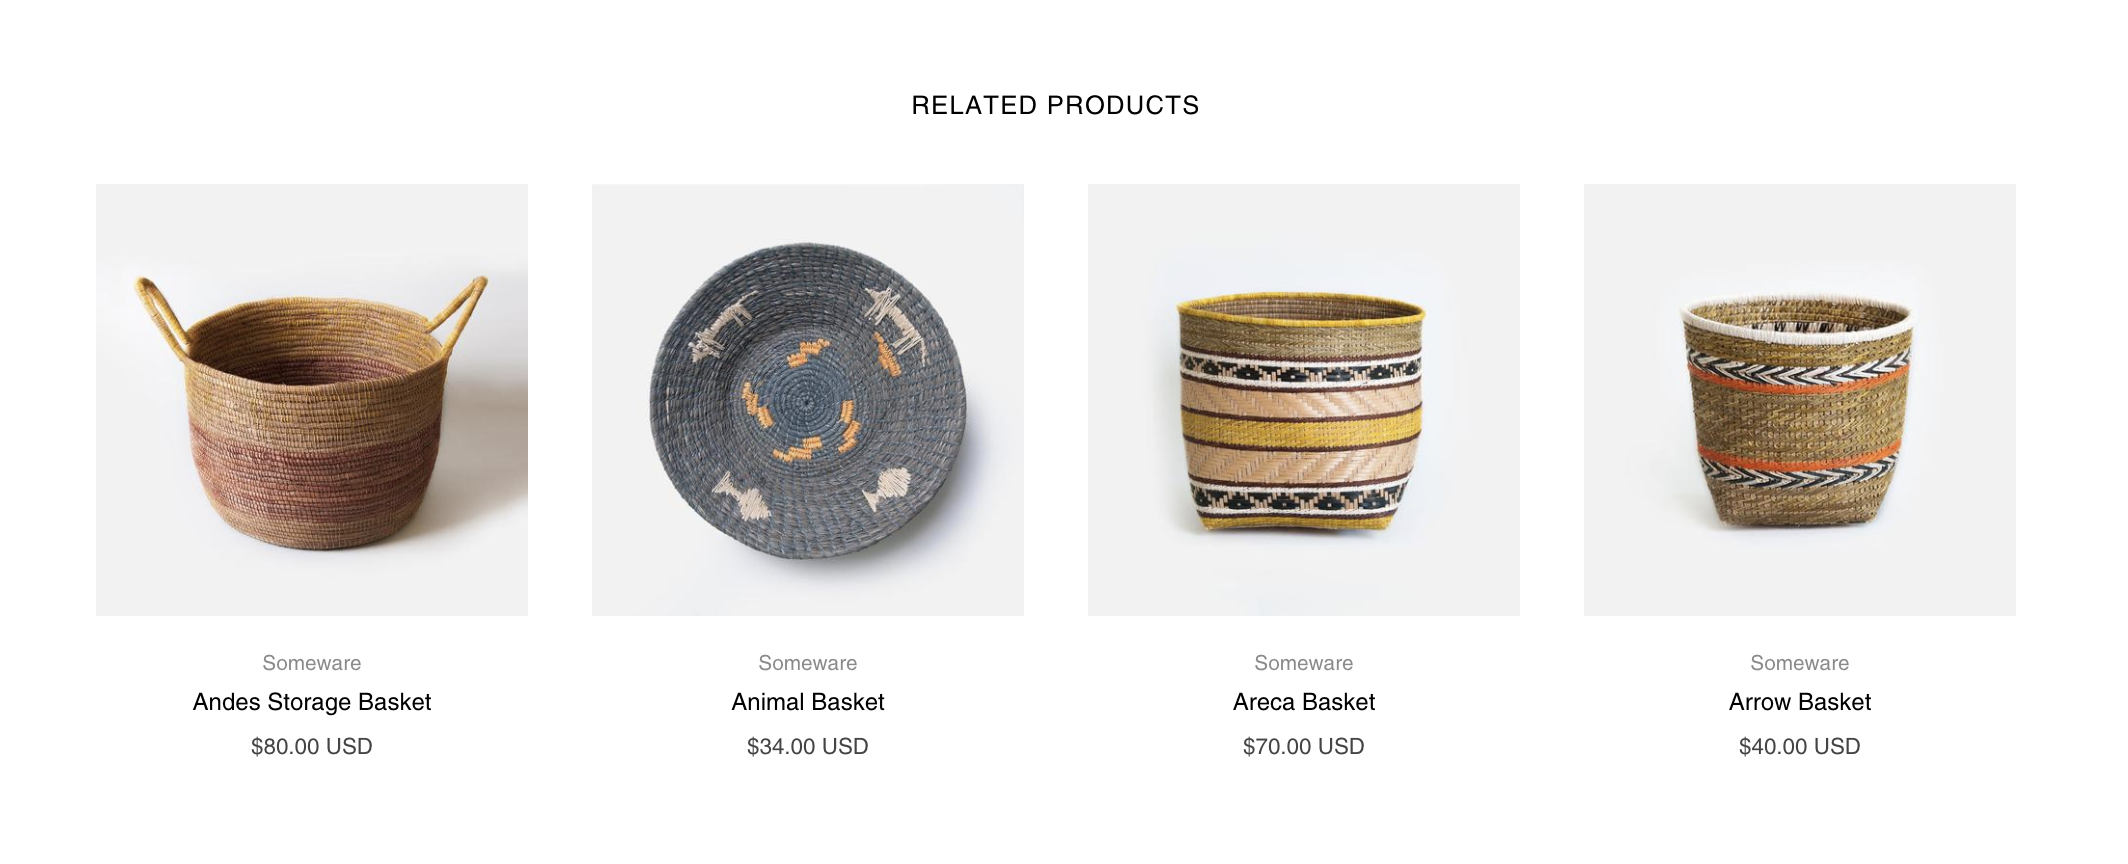 Related products feature on product page